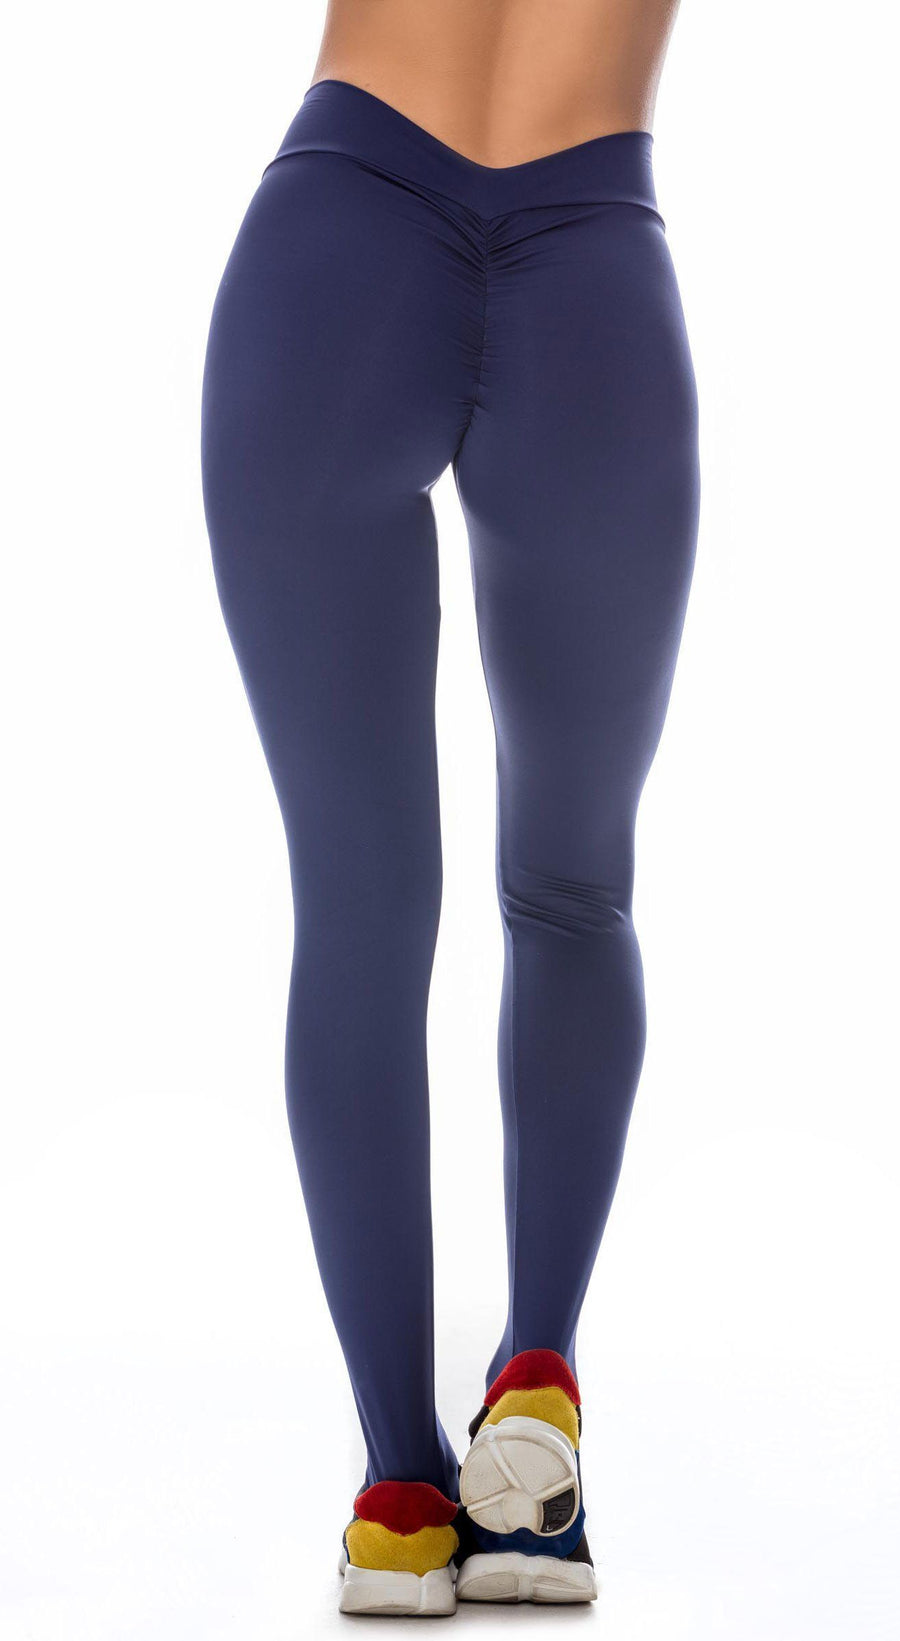 Brazilian Workout Legging - Scrunch Booty Lift! Navy